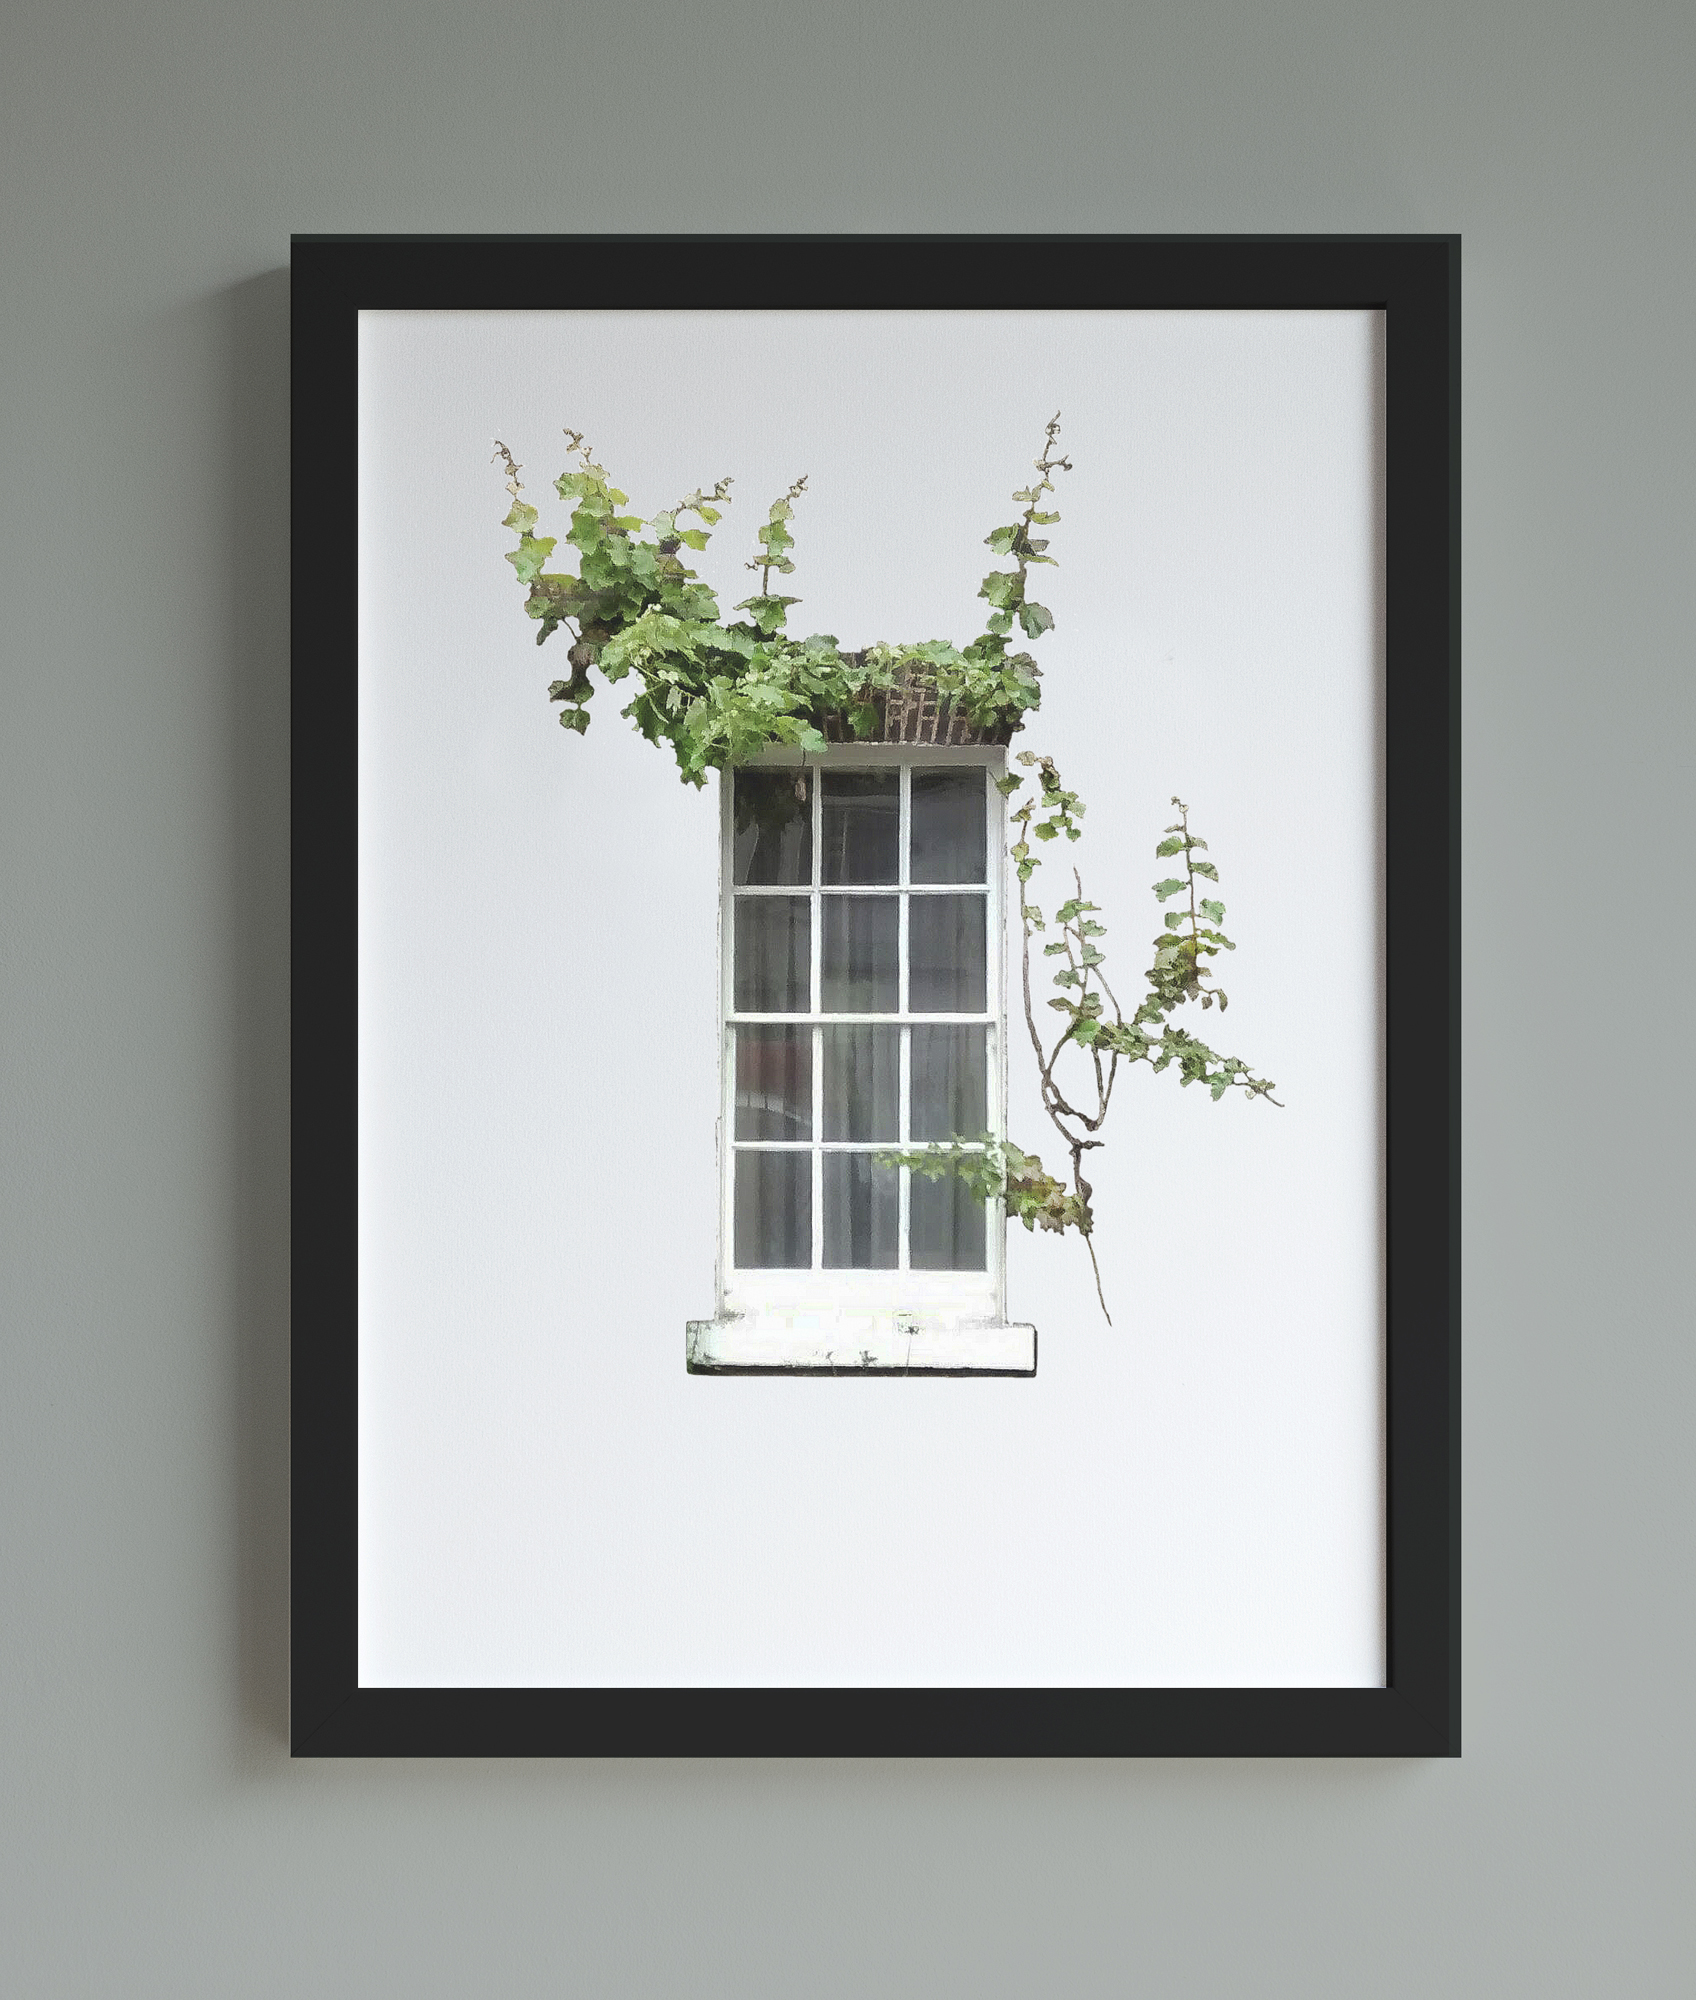 Image of framed print featuring a window surrounded by ivy